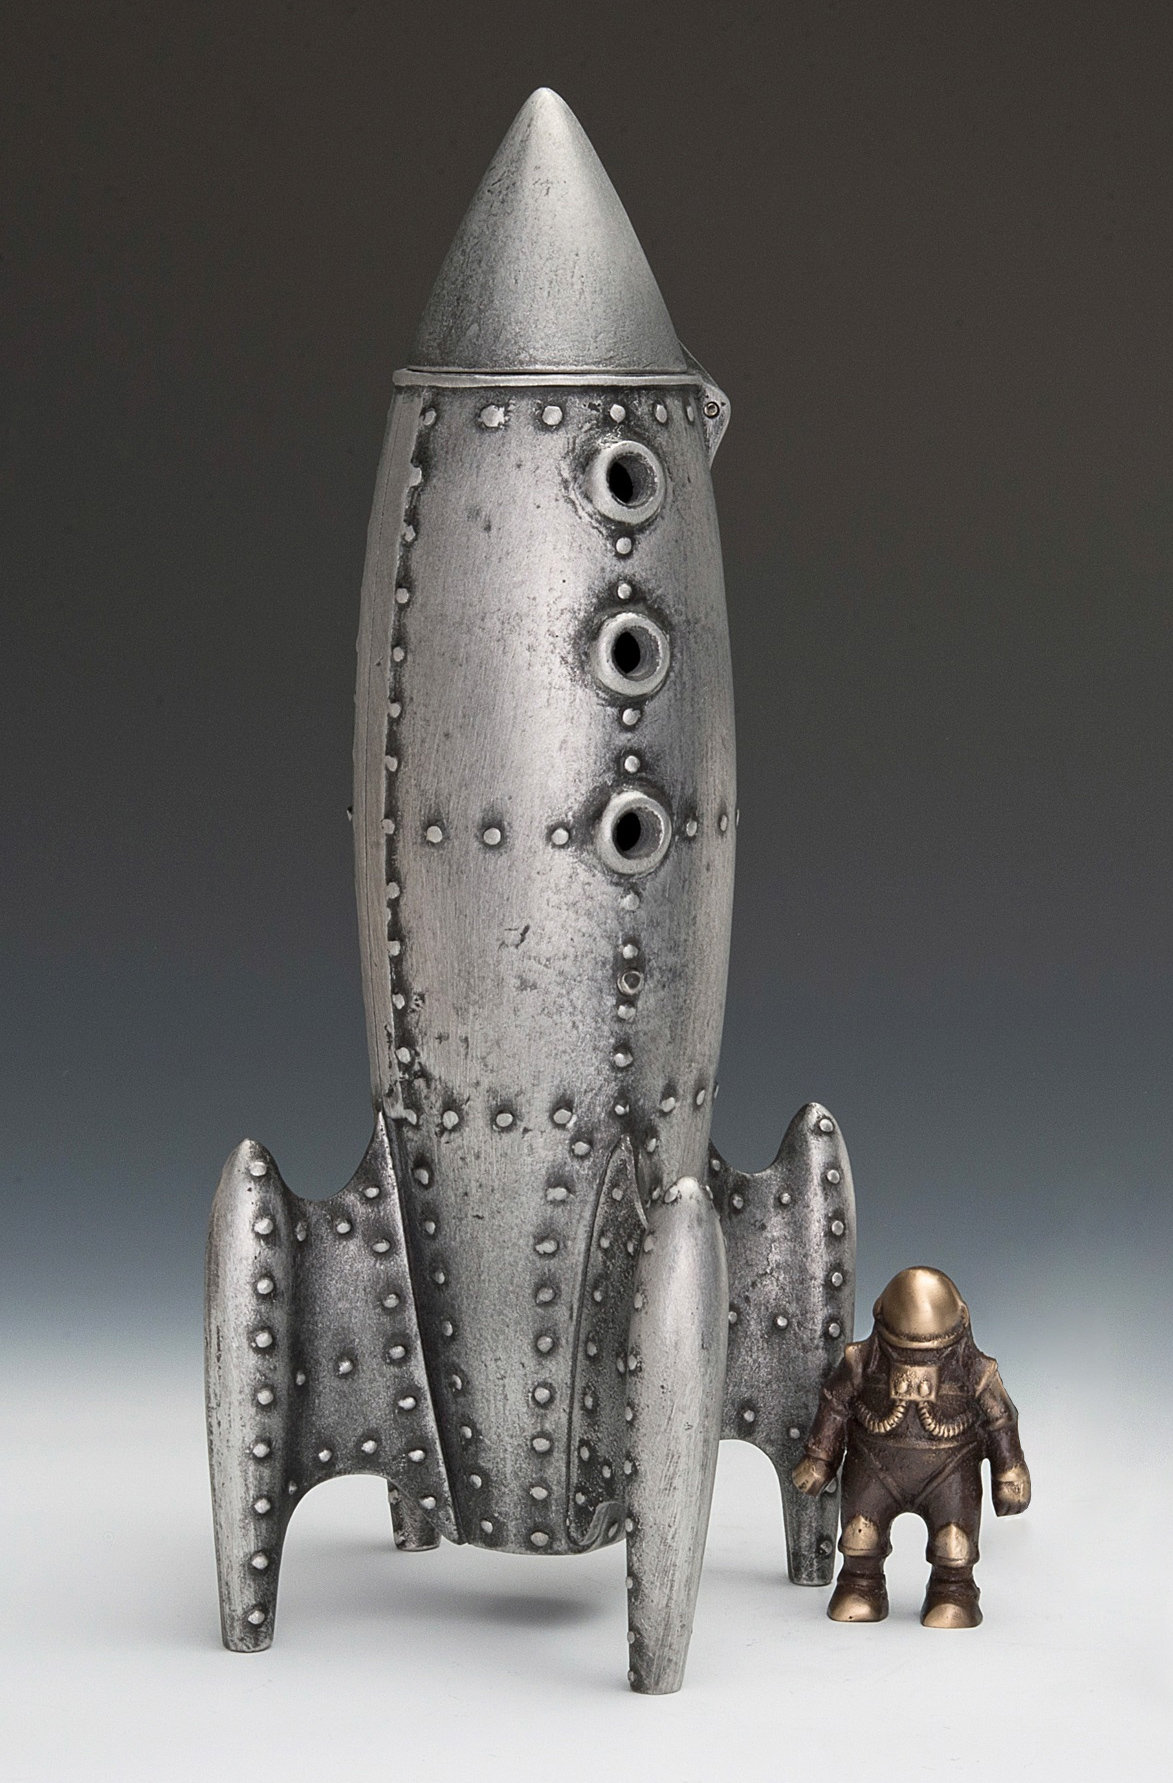 Moon Rocket Coin Bank With Spaceman By Scott Nelles Metal Bank